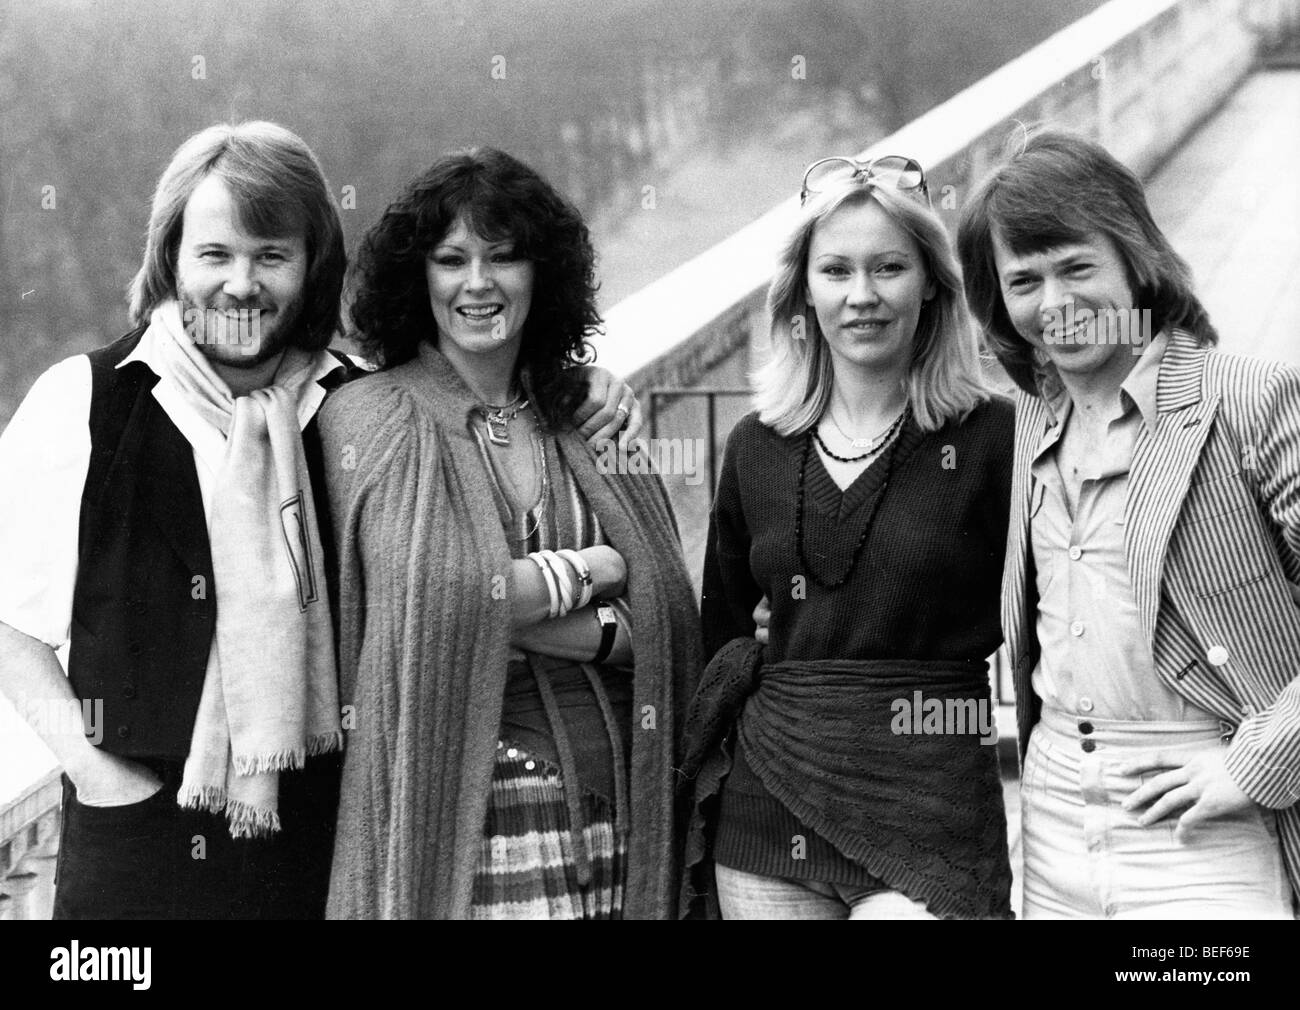 ABBA in the late-1970's (L-R) Benny Andersson, Anni-Frid Lyngstad (Frida), Agnetha Fältskog, and Björn Ulvaeus Stock Photo